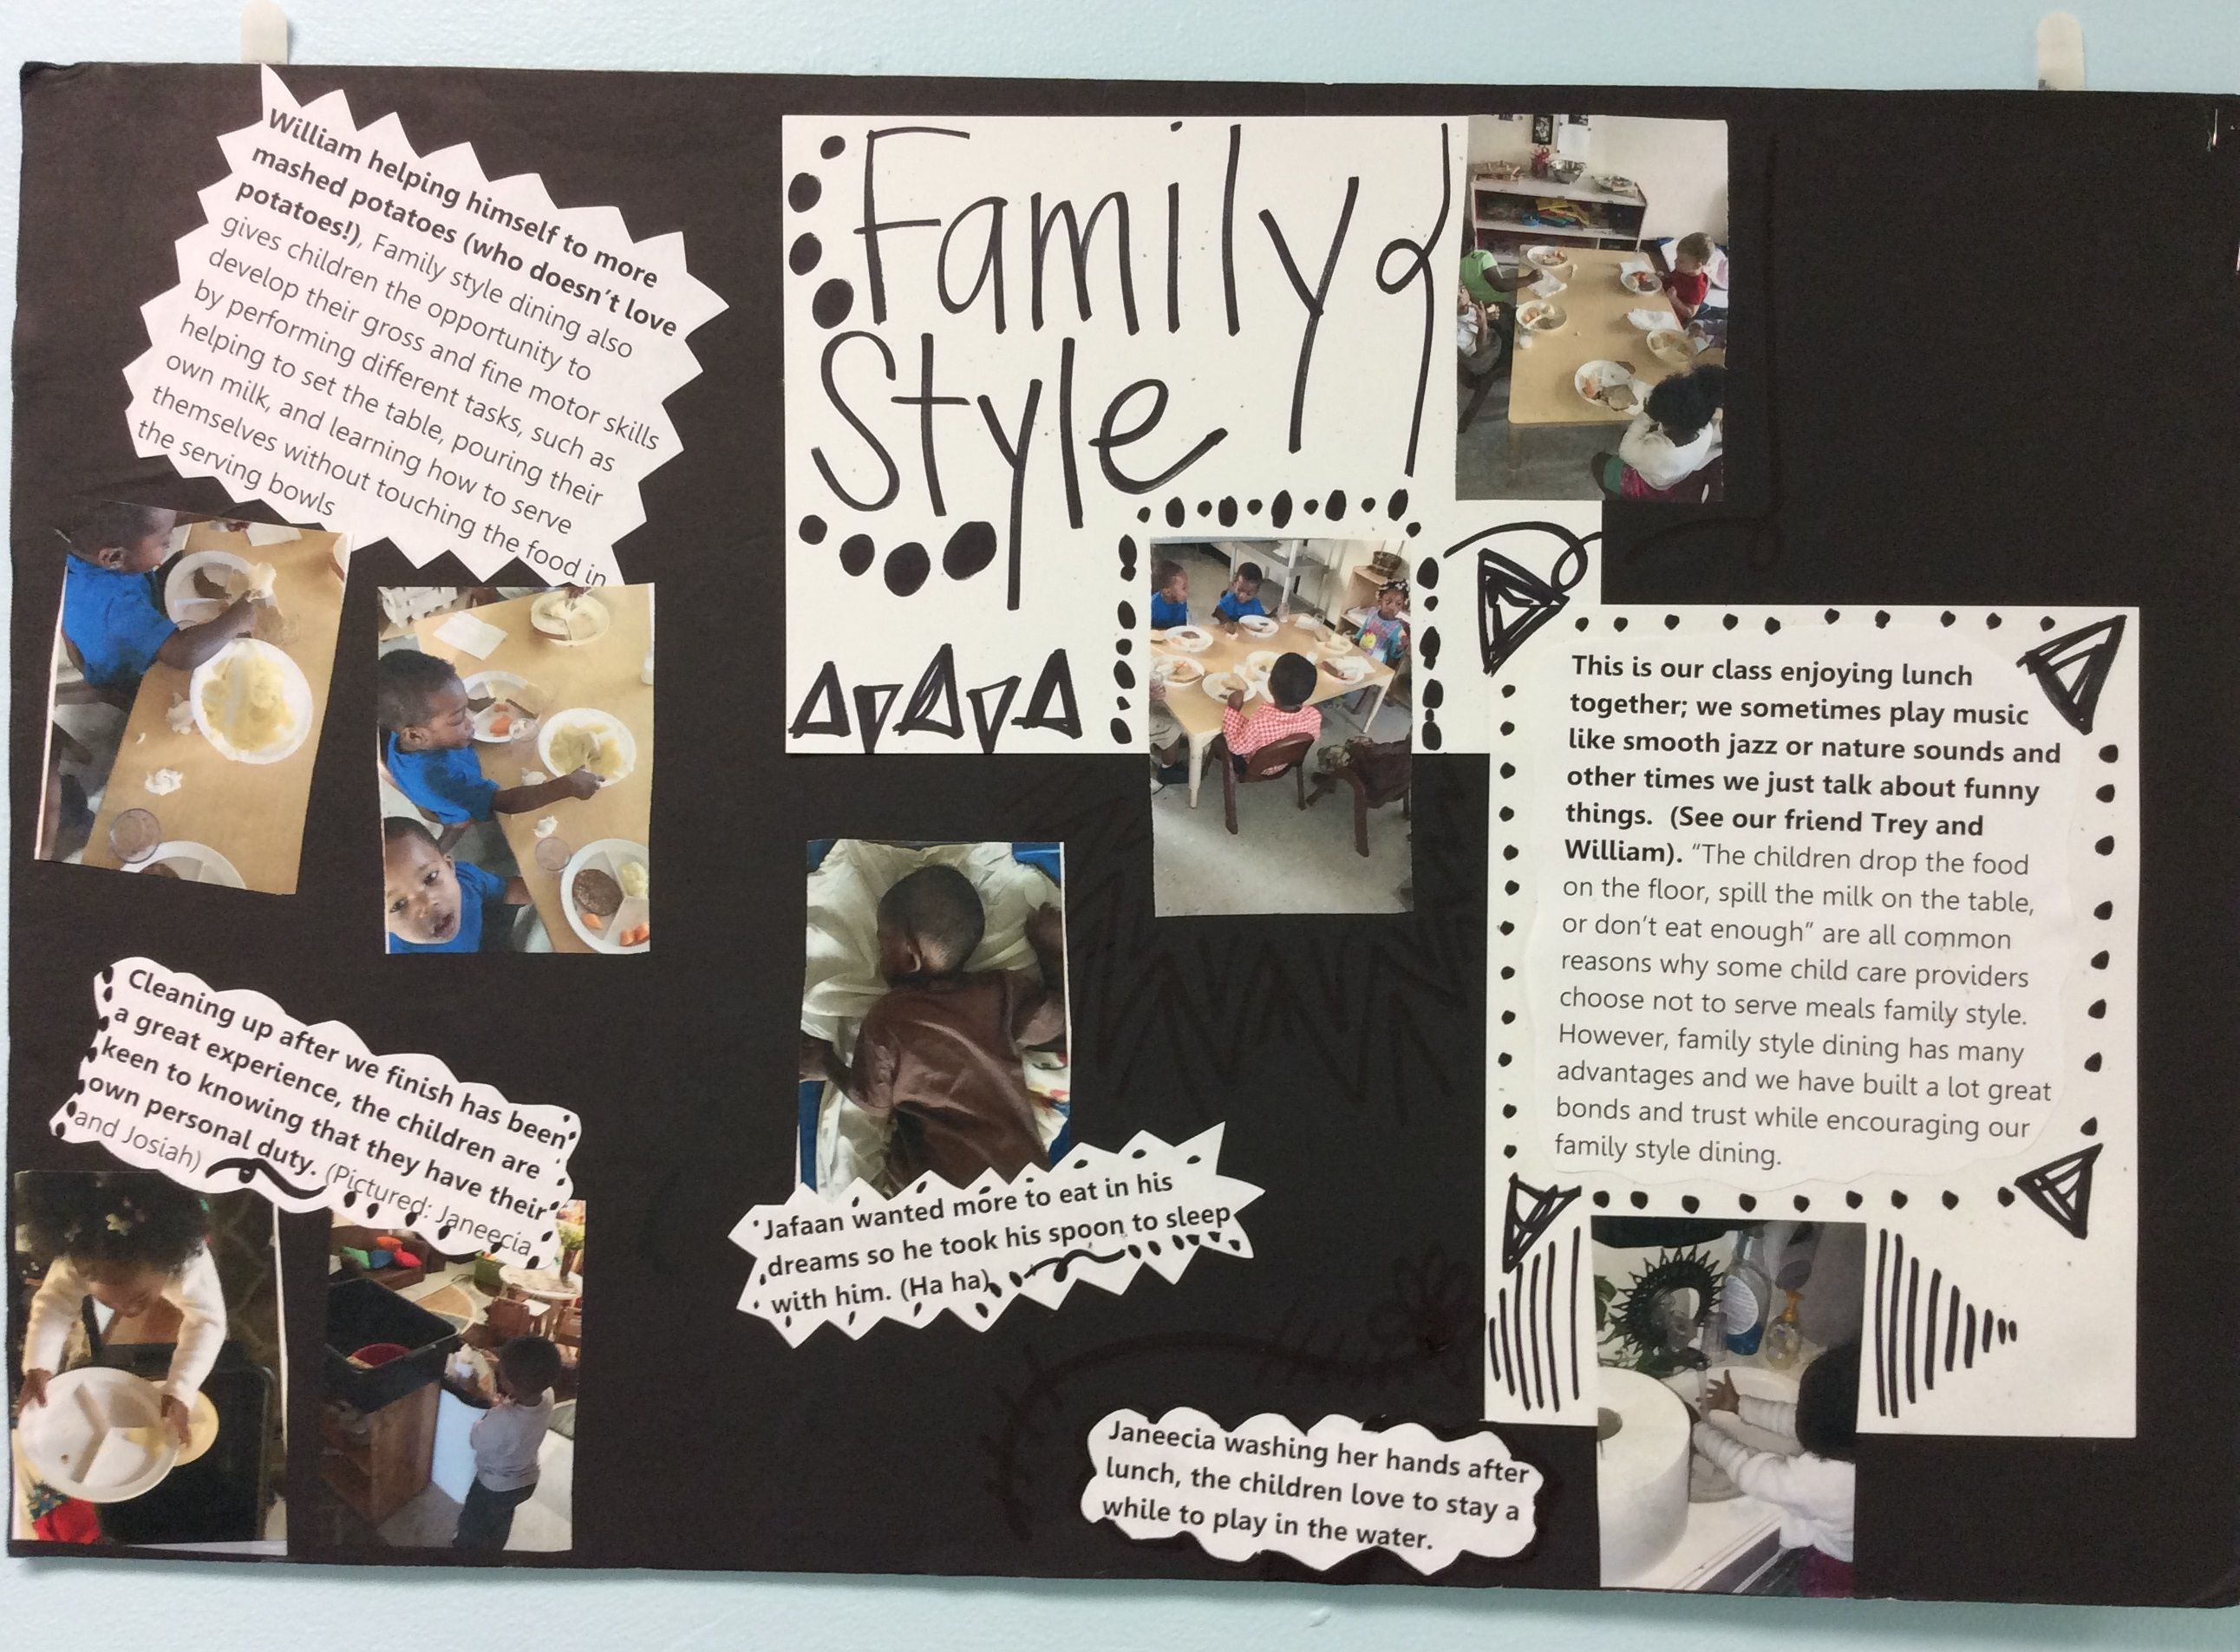 Bruce Perry Early Childhood Brain Development - Chestnut ymca family style dining documentation early childhood